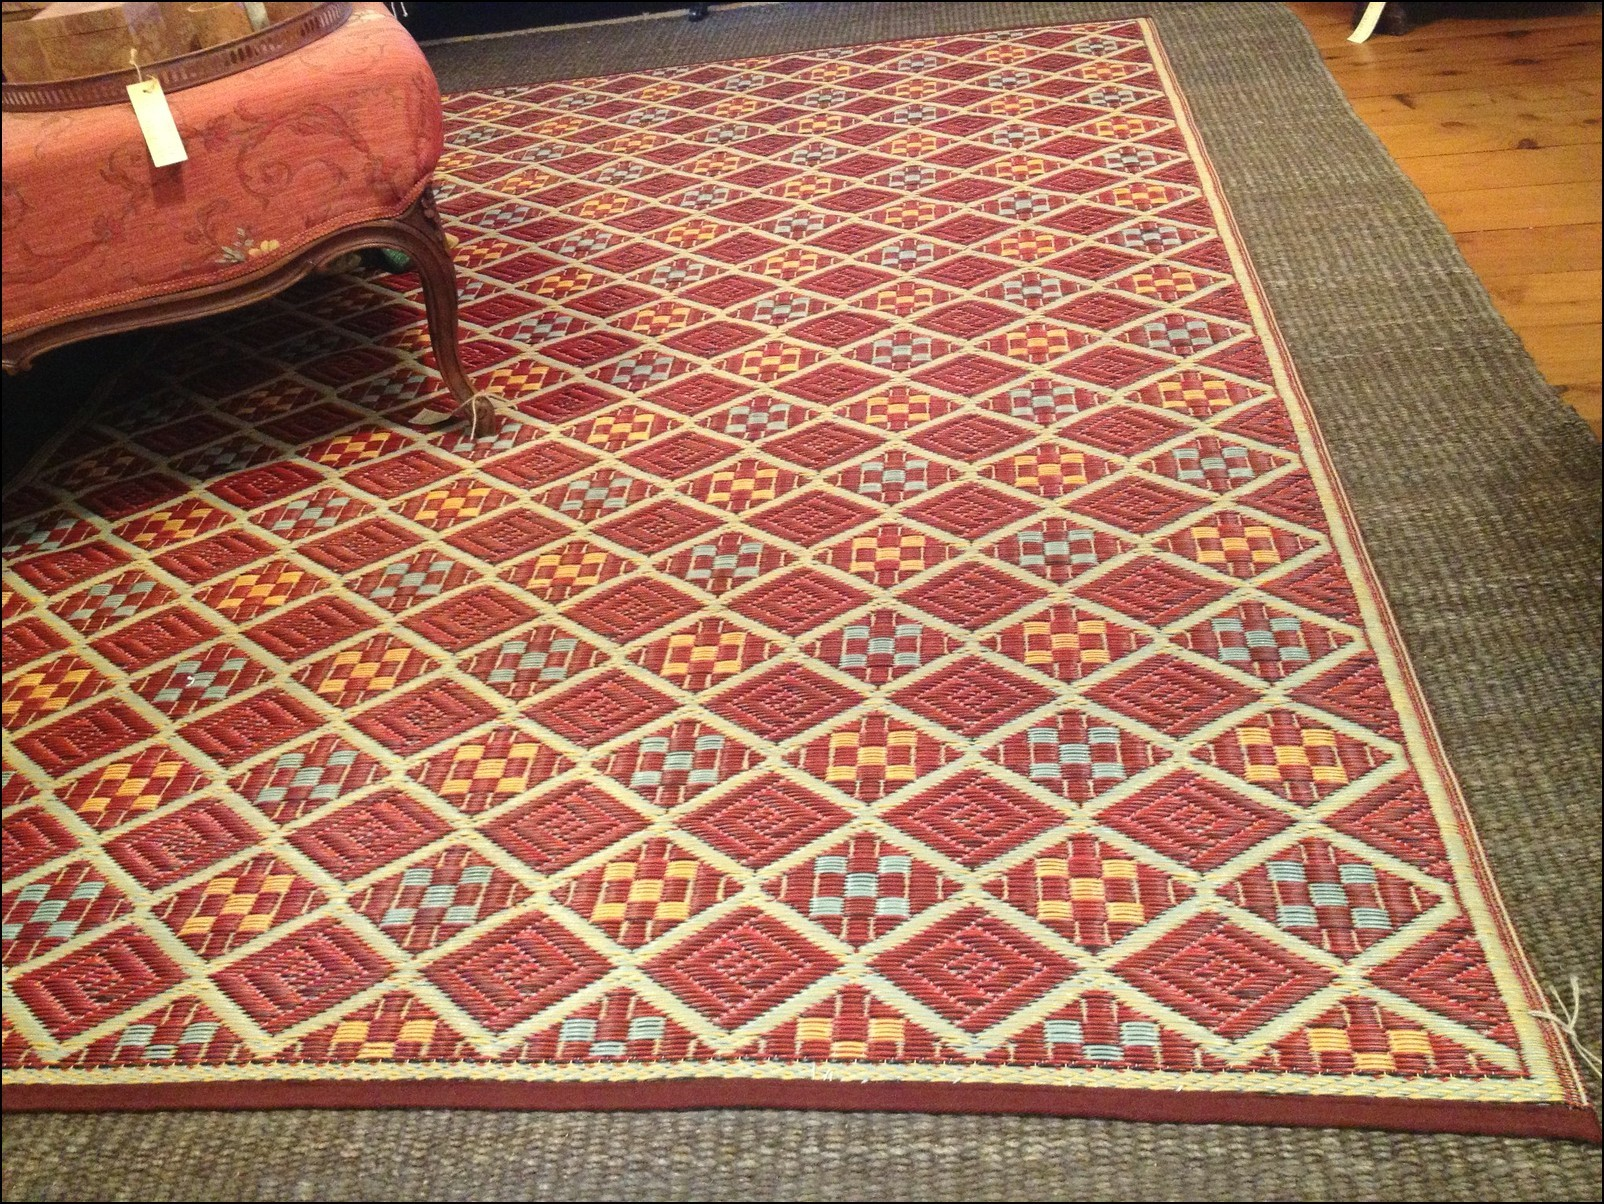 Cheap Area Rugs 8x10 Under 100 Top Home Information